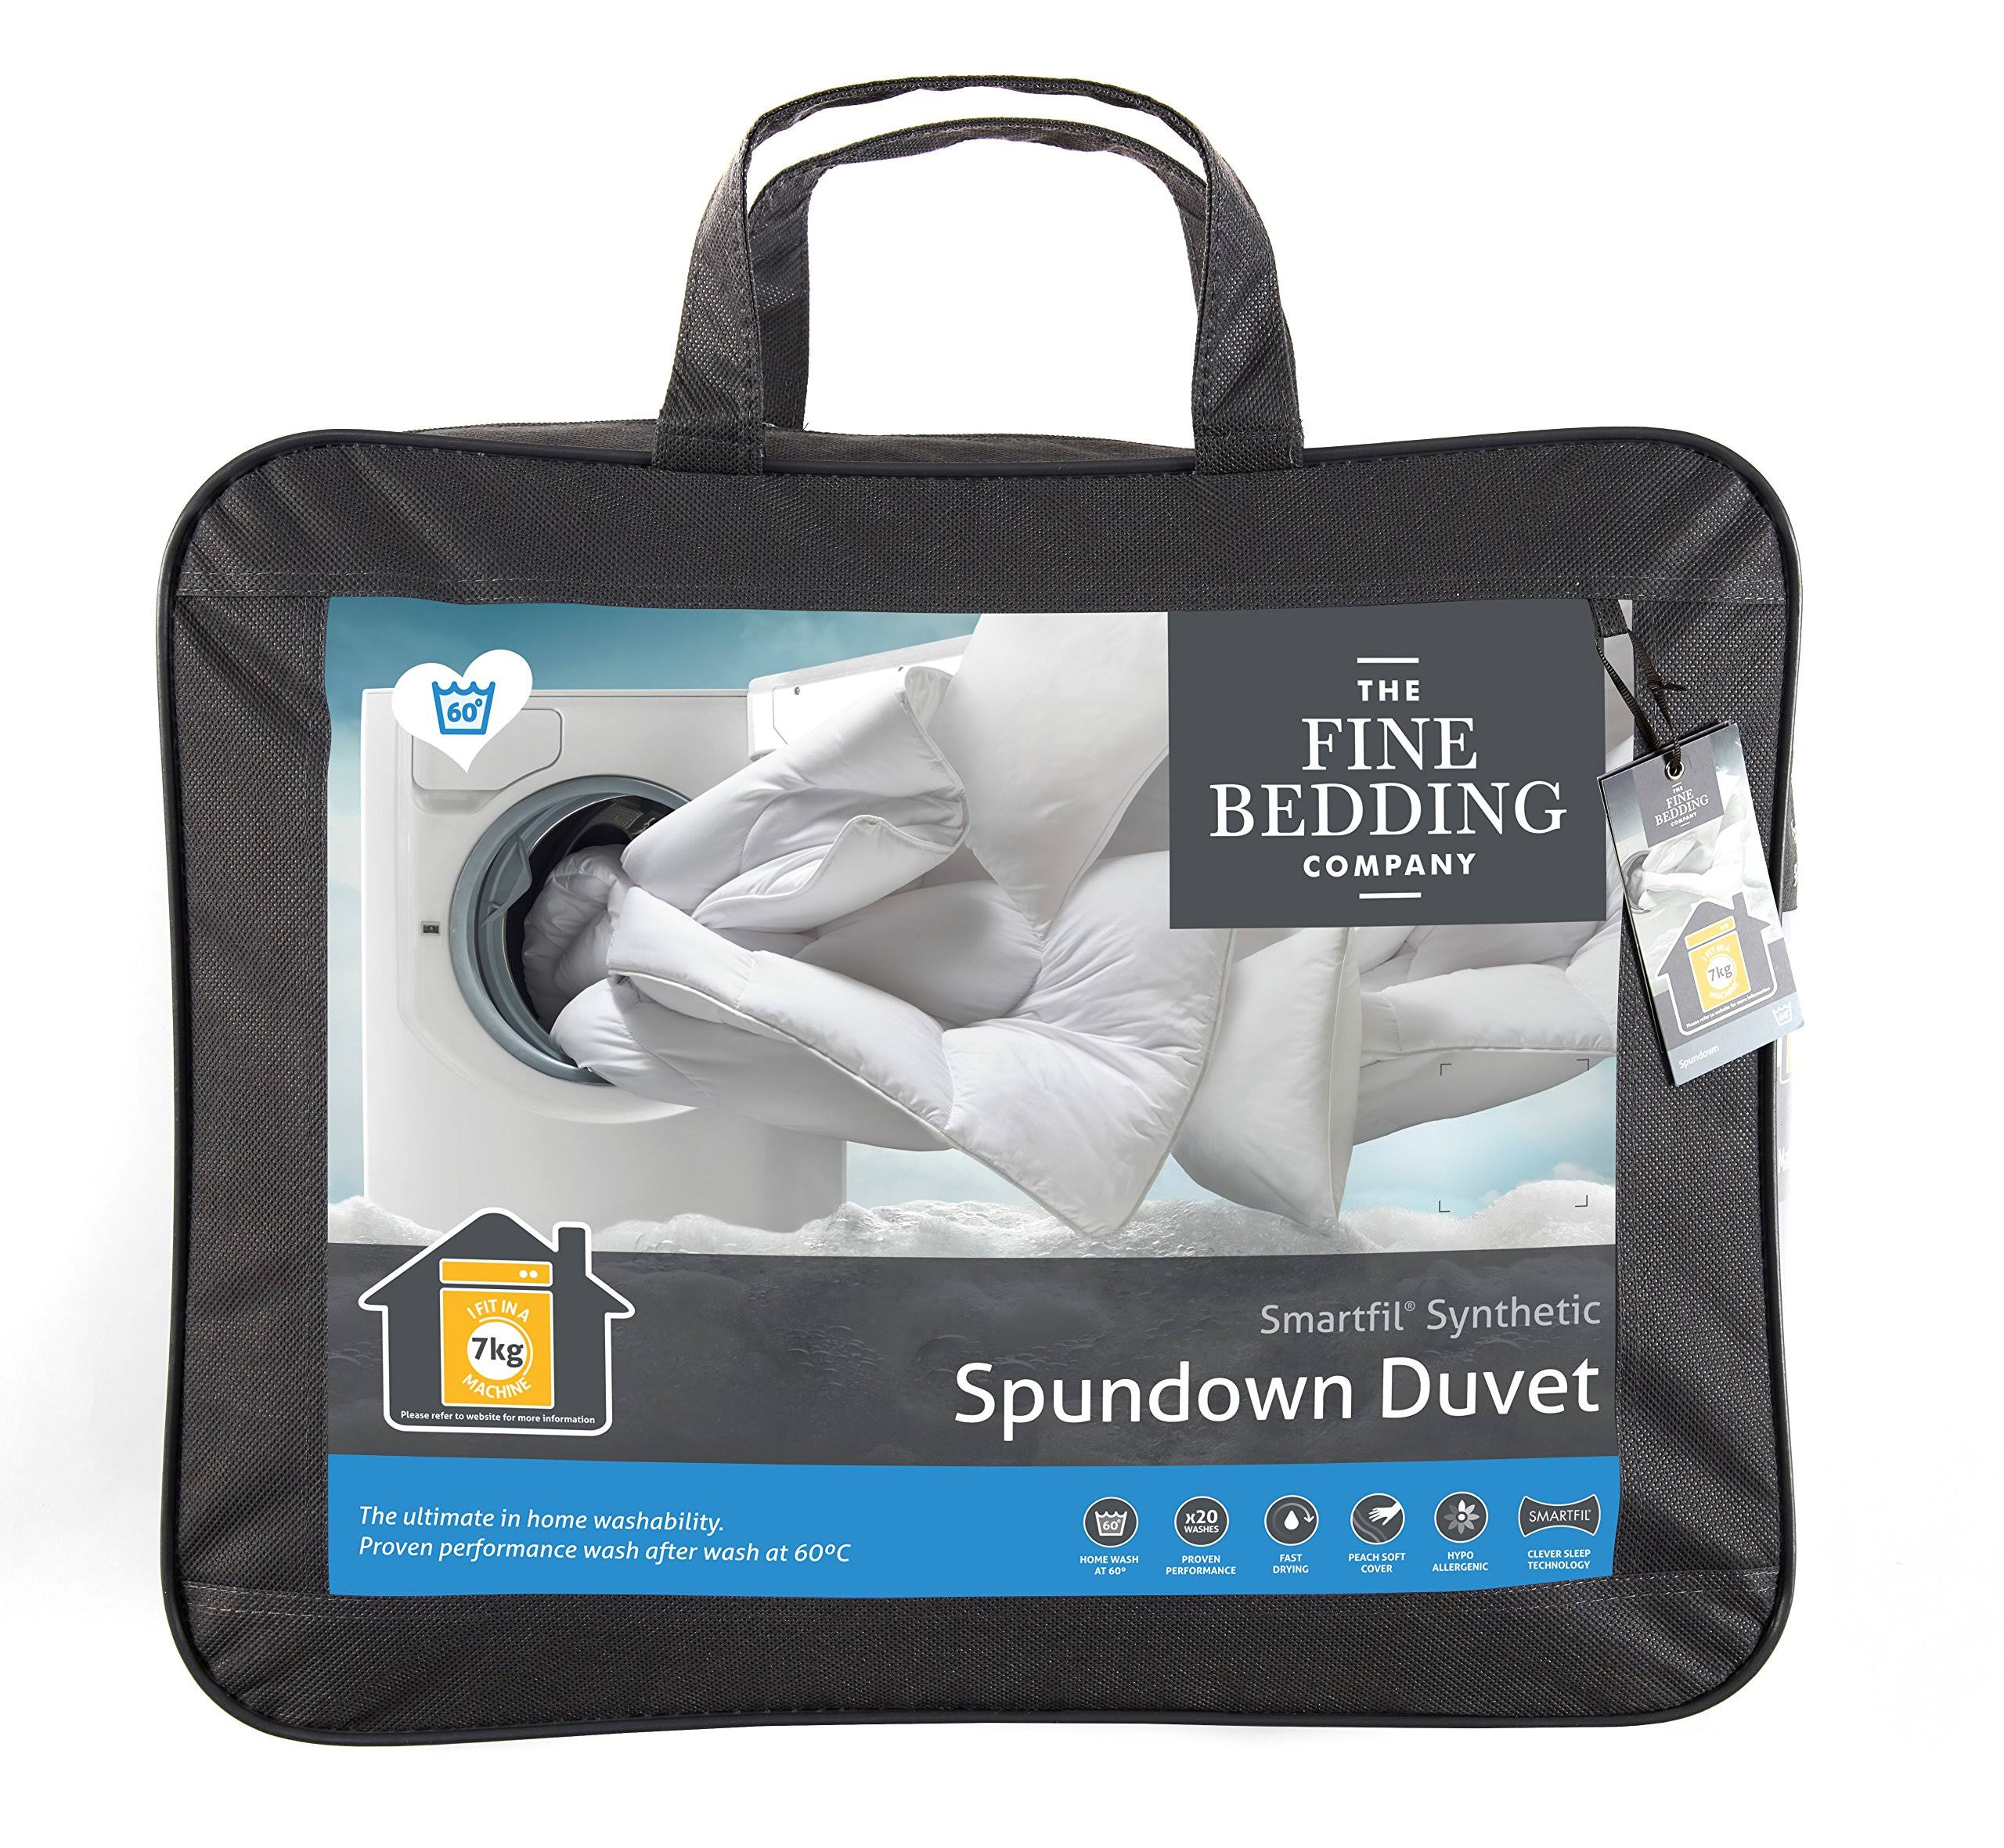 The Fine Bedding Company Spundown Duvet, 10.5 Tog - Double